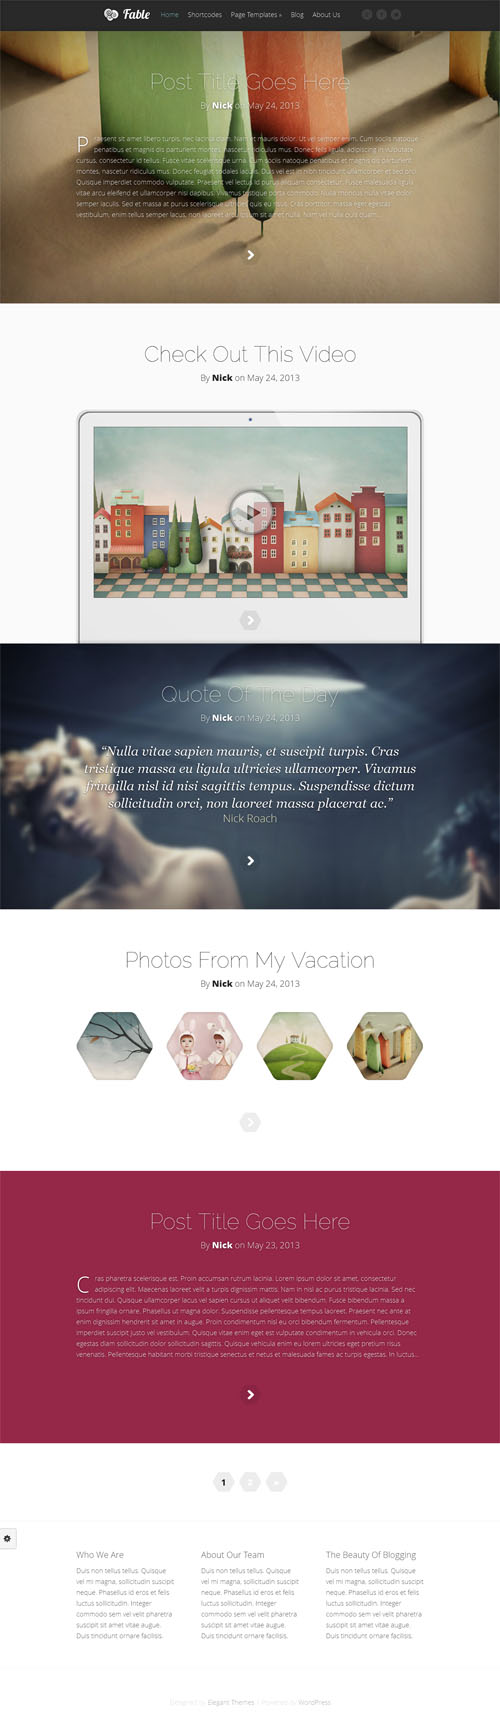 Fable review elegant themes worth for Elegant themes divi review